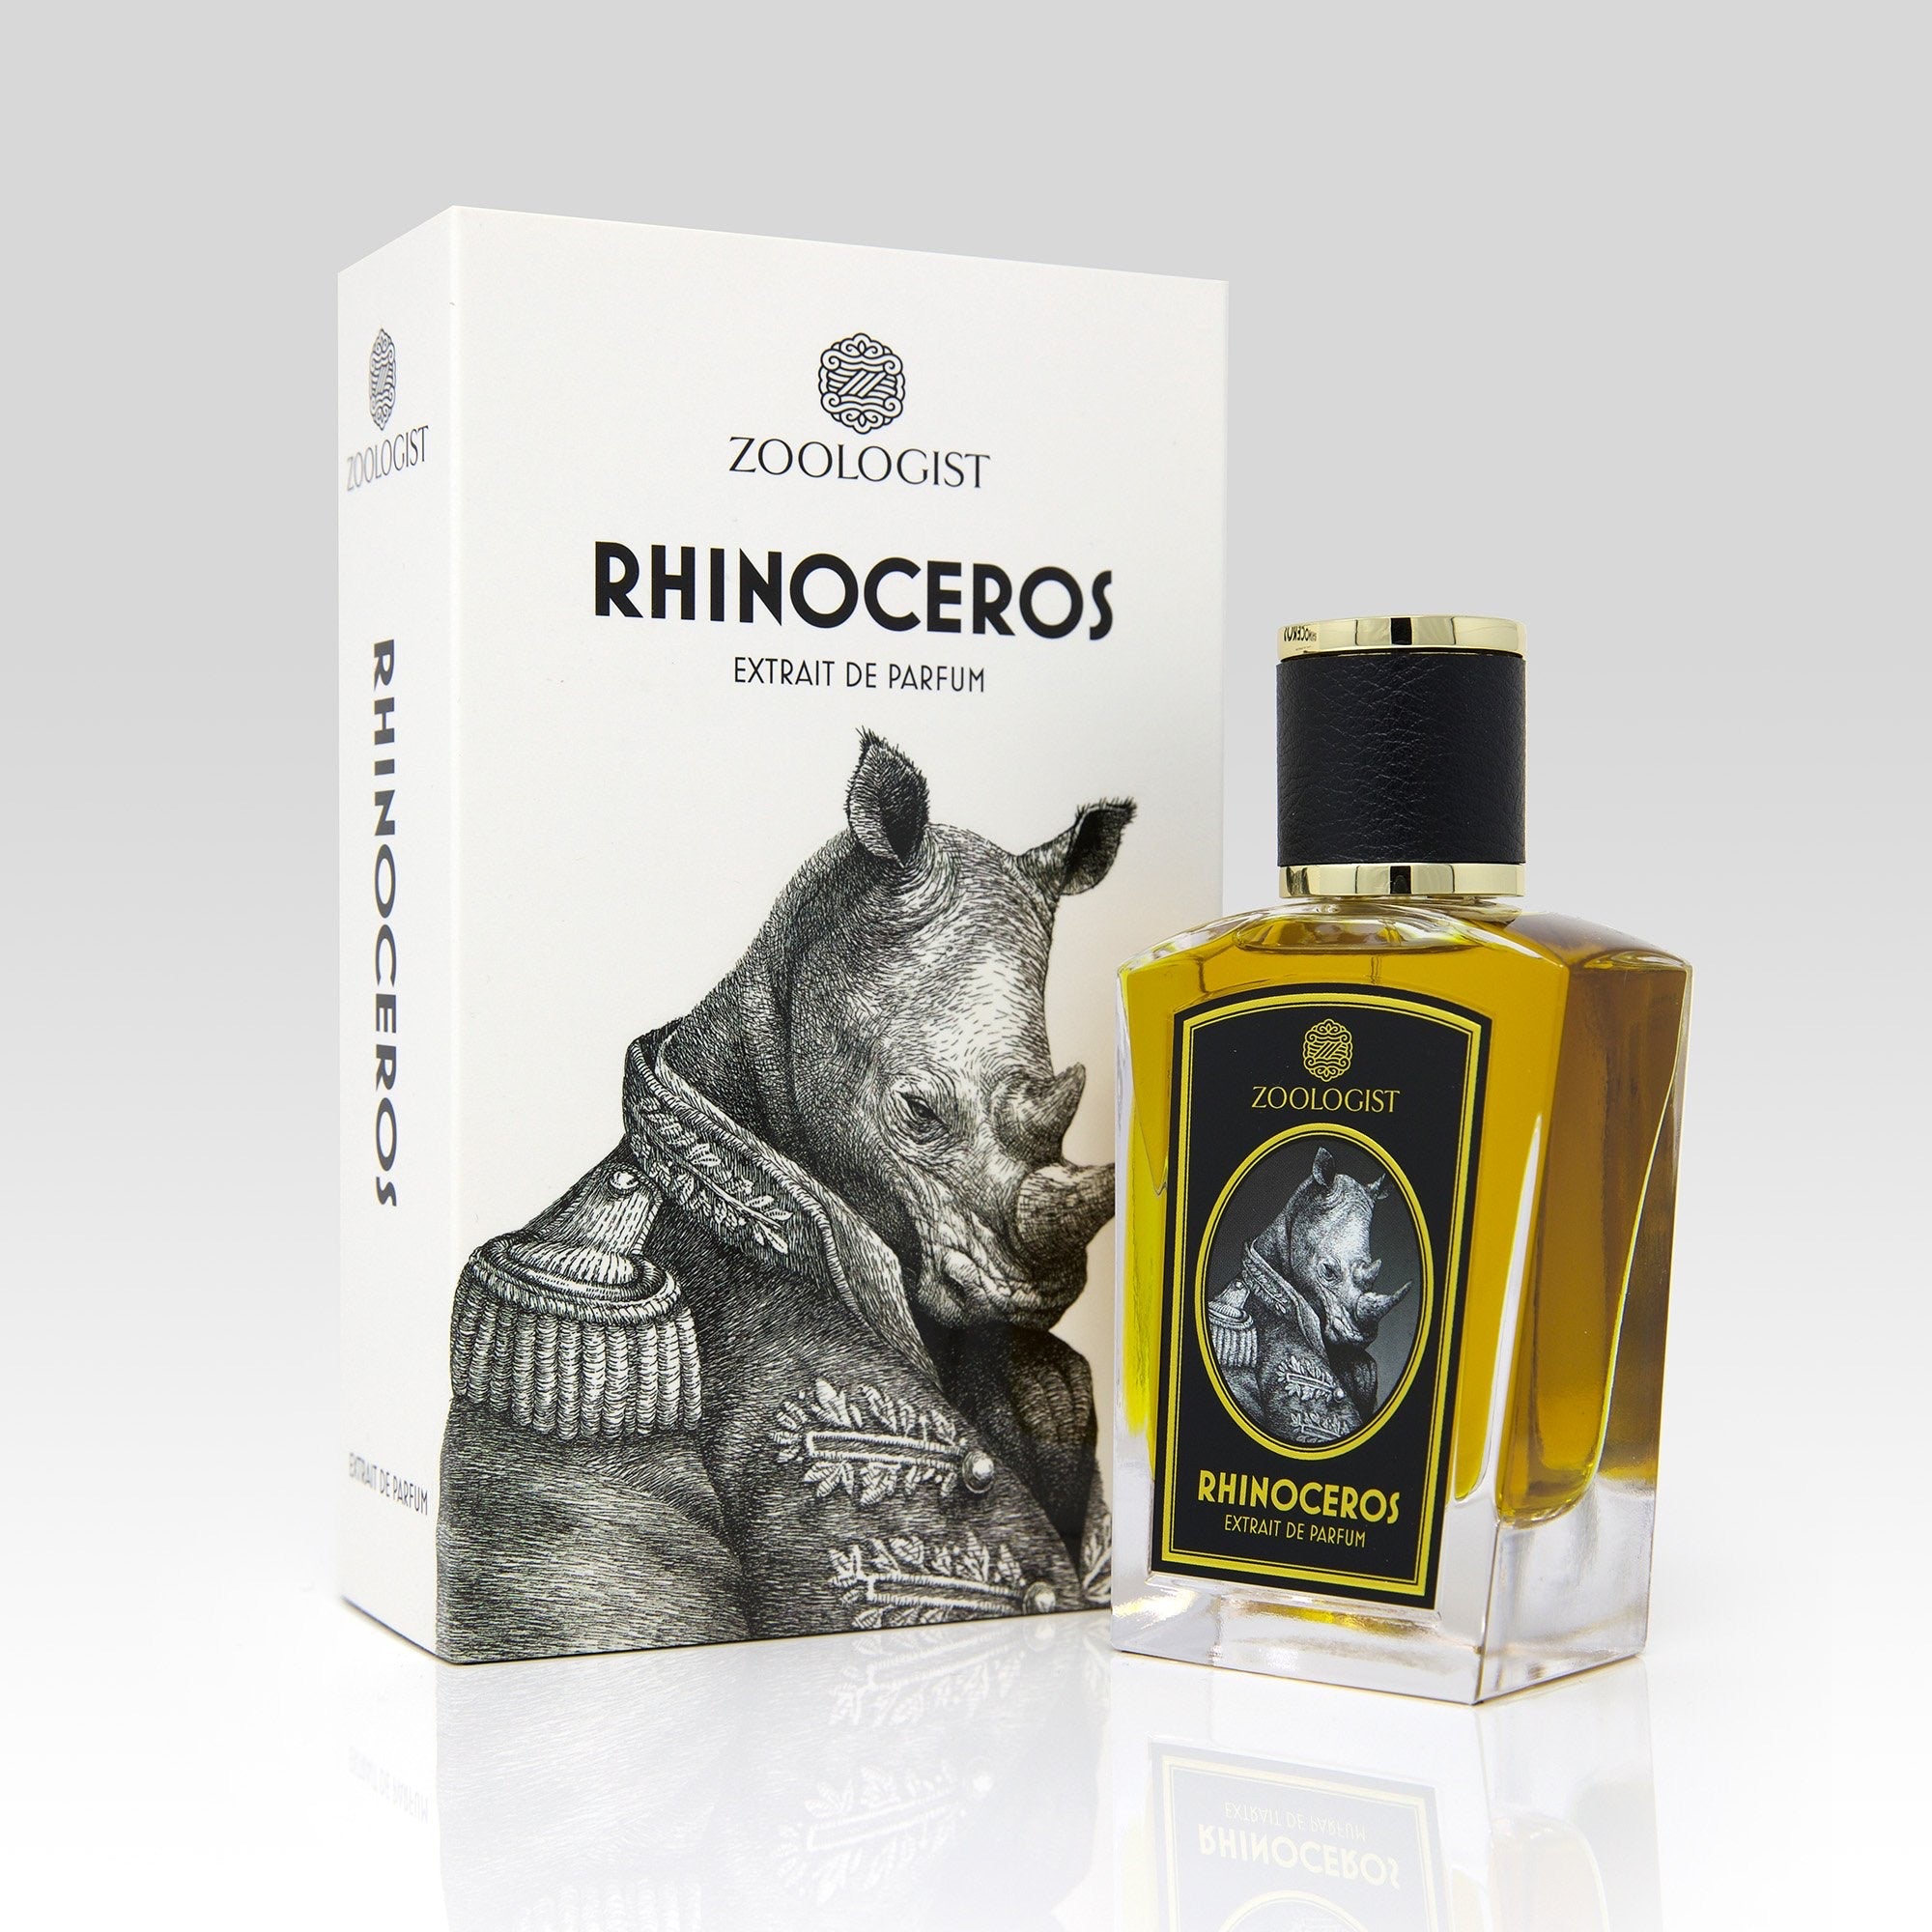 Rhinoceros Deluxe Bottle Extrait de Parfum by Zoologist